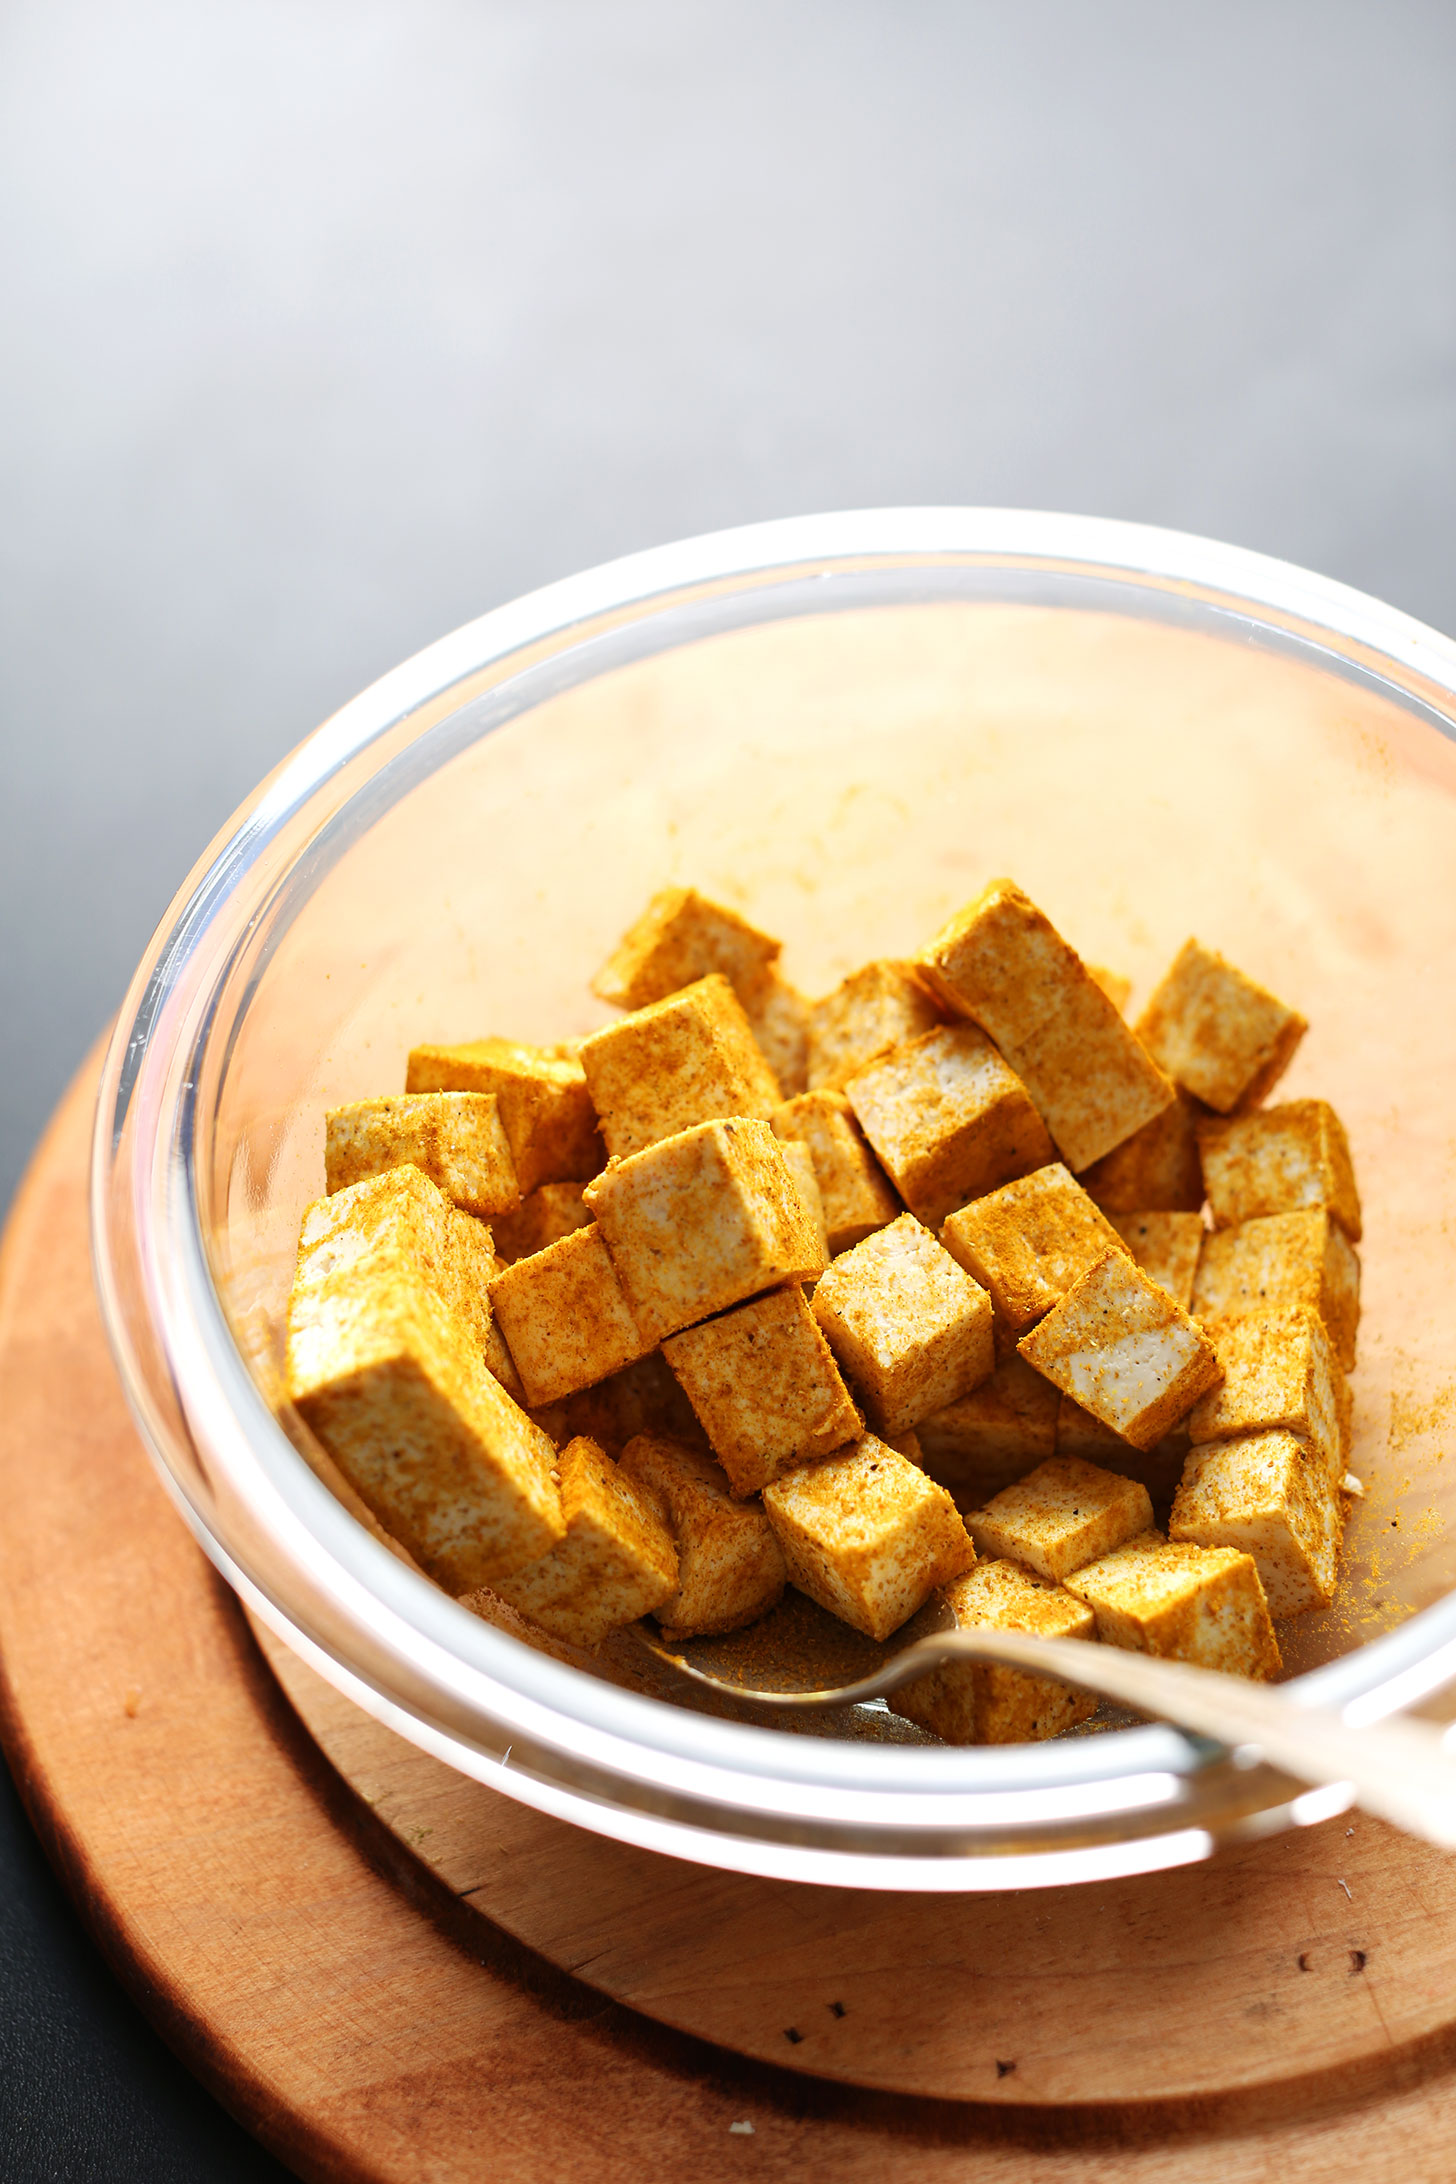 Stirring cubed tofu in spices for our Crispy Tofu recipe